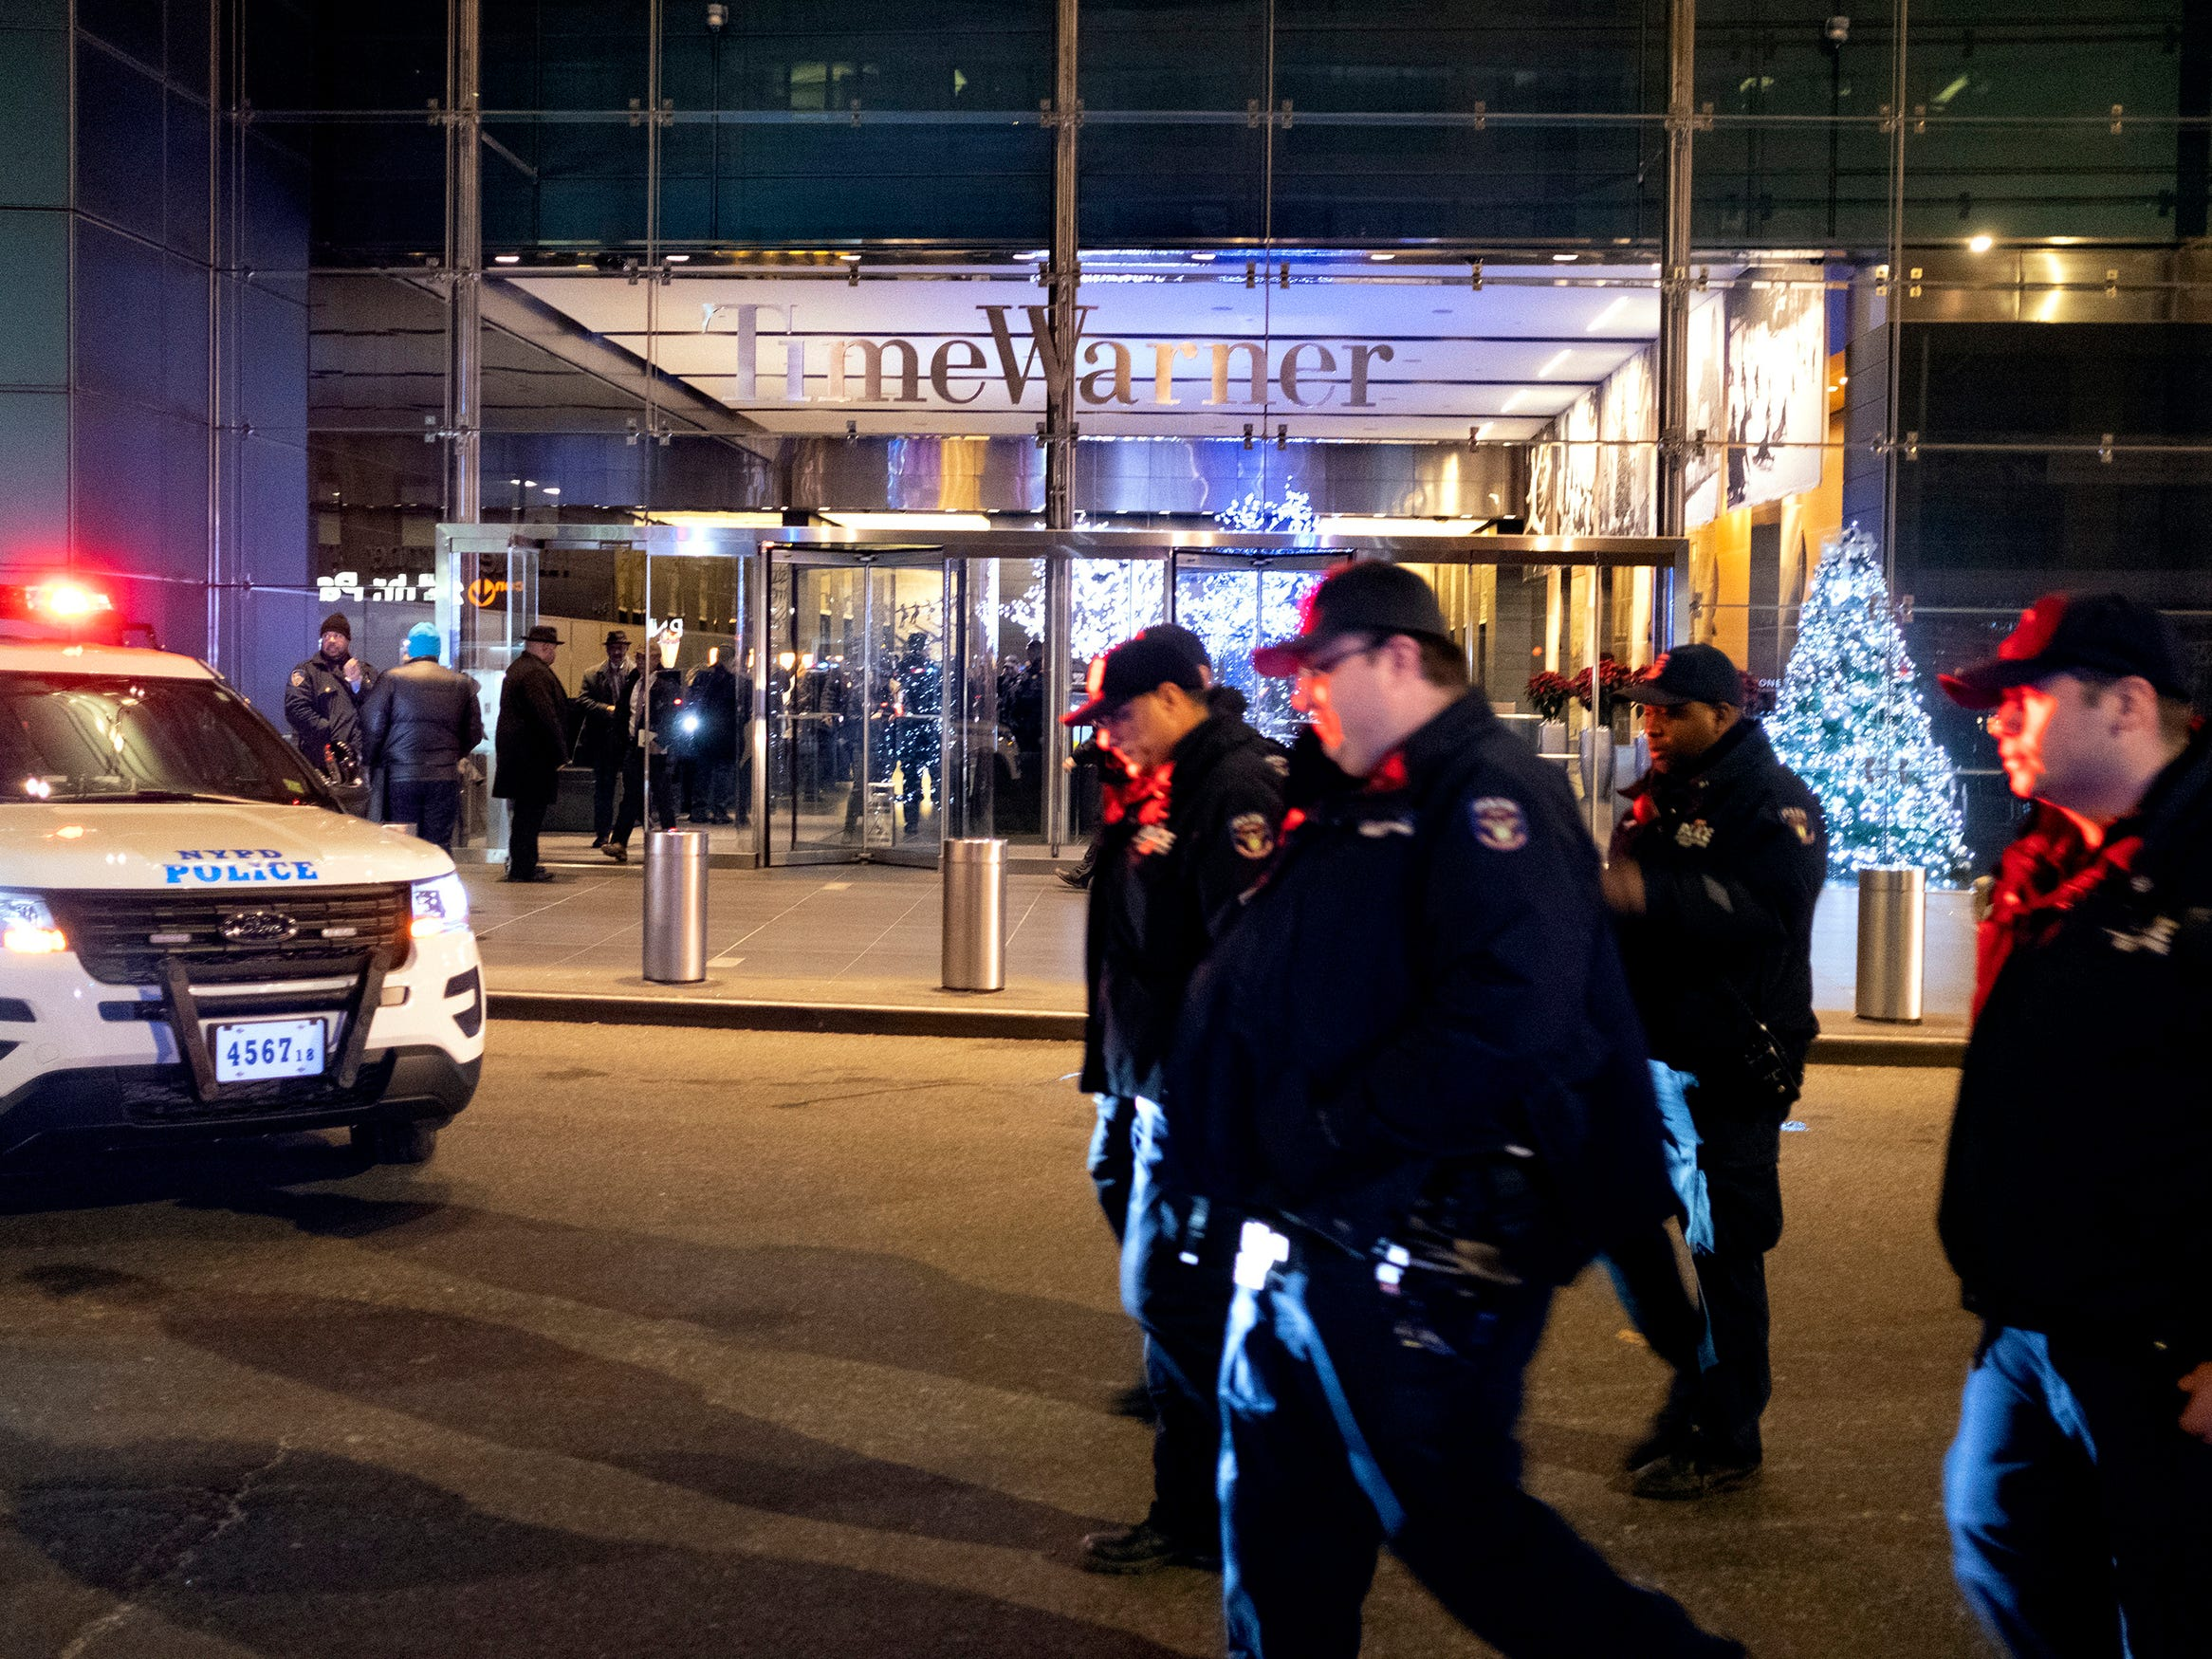 After the building was determined safe, New York City police officers walk from the area of Time Warner Center in New York Thursday, Dec. 6, 2018, after a bomb threat was called into the building and occupants were evacuated, including CNN employees.